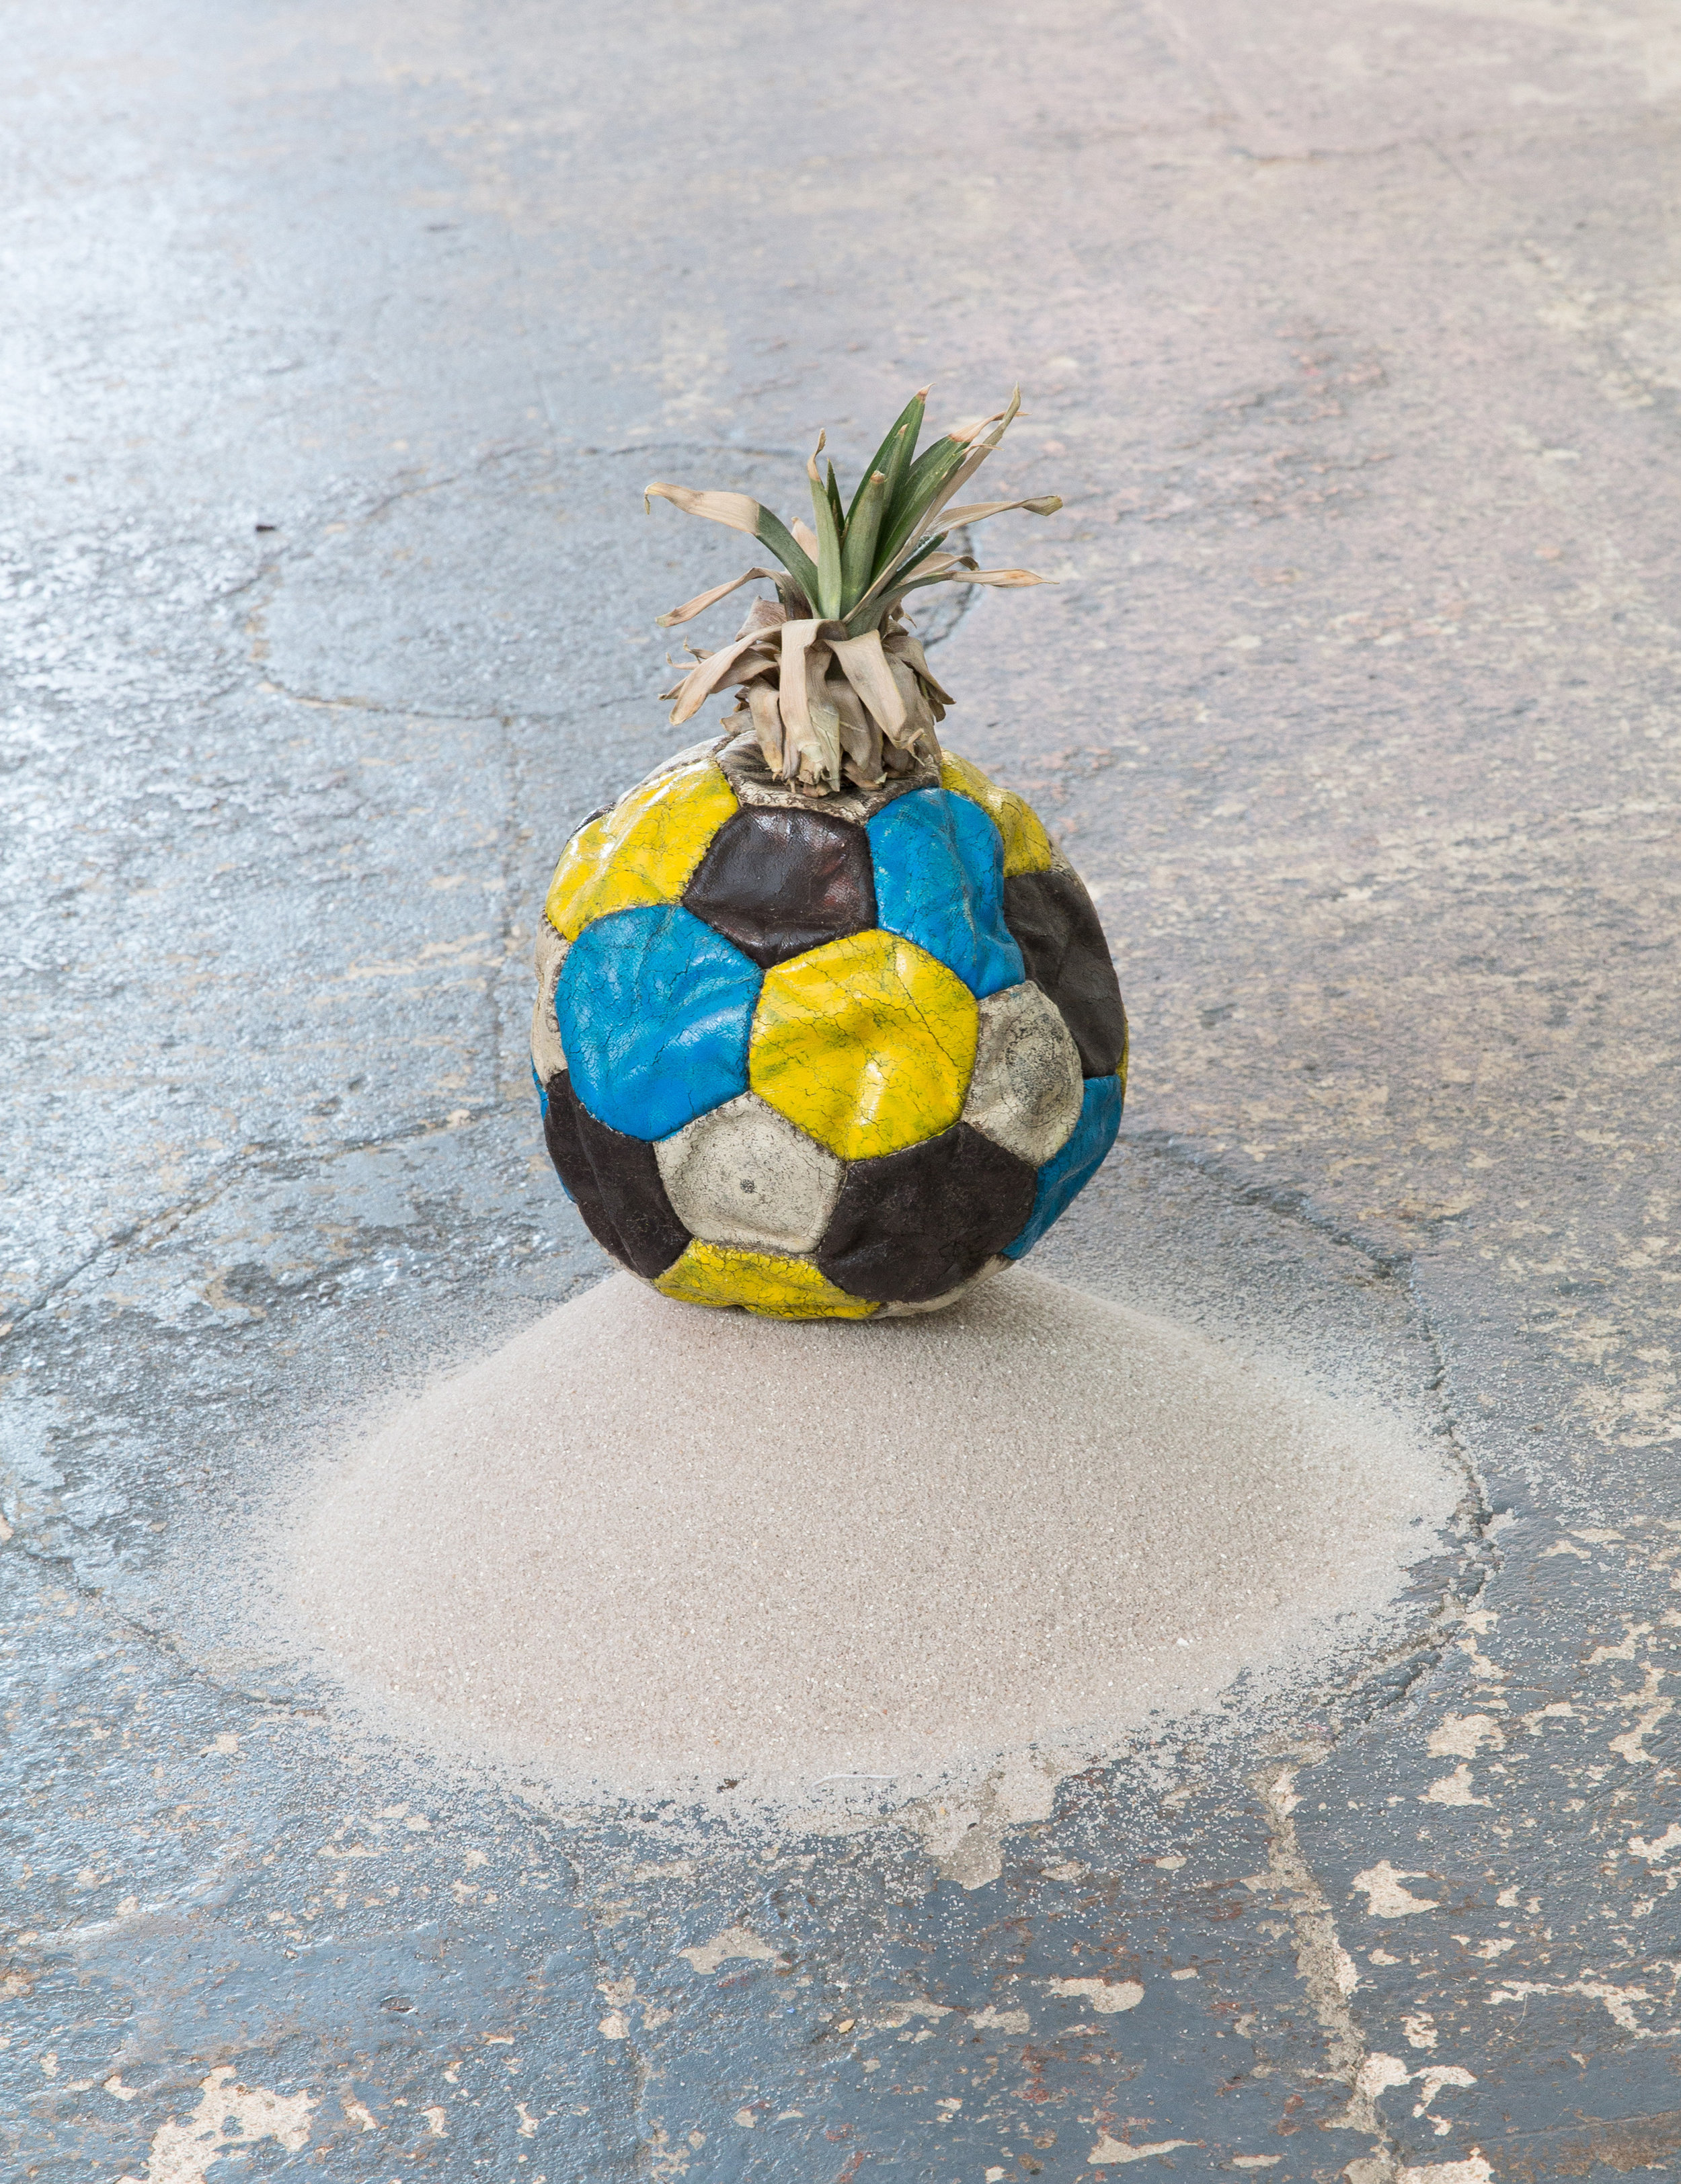 Soccer Ball Disguised as a Pinapple, 2014 Alter Fussball, Farbe, Ananasblätter, Sand ca. 30 x 20 x 20 cm